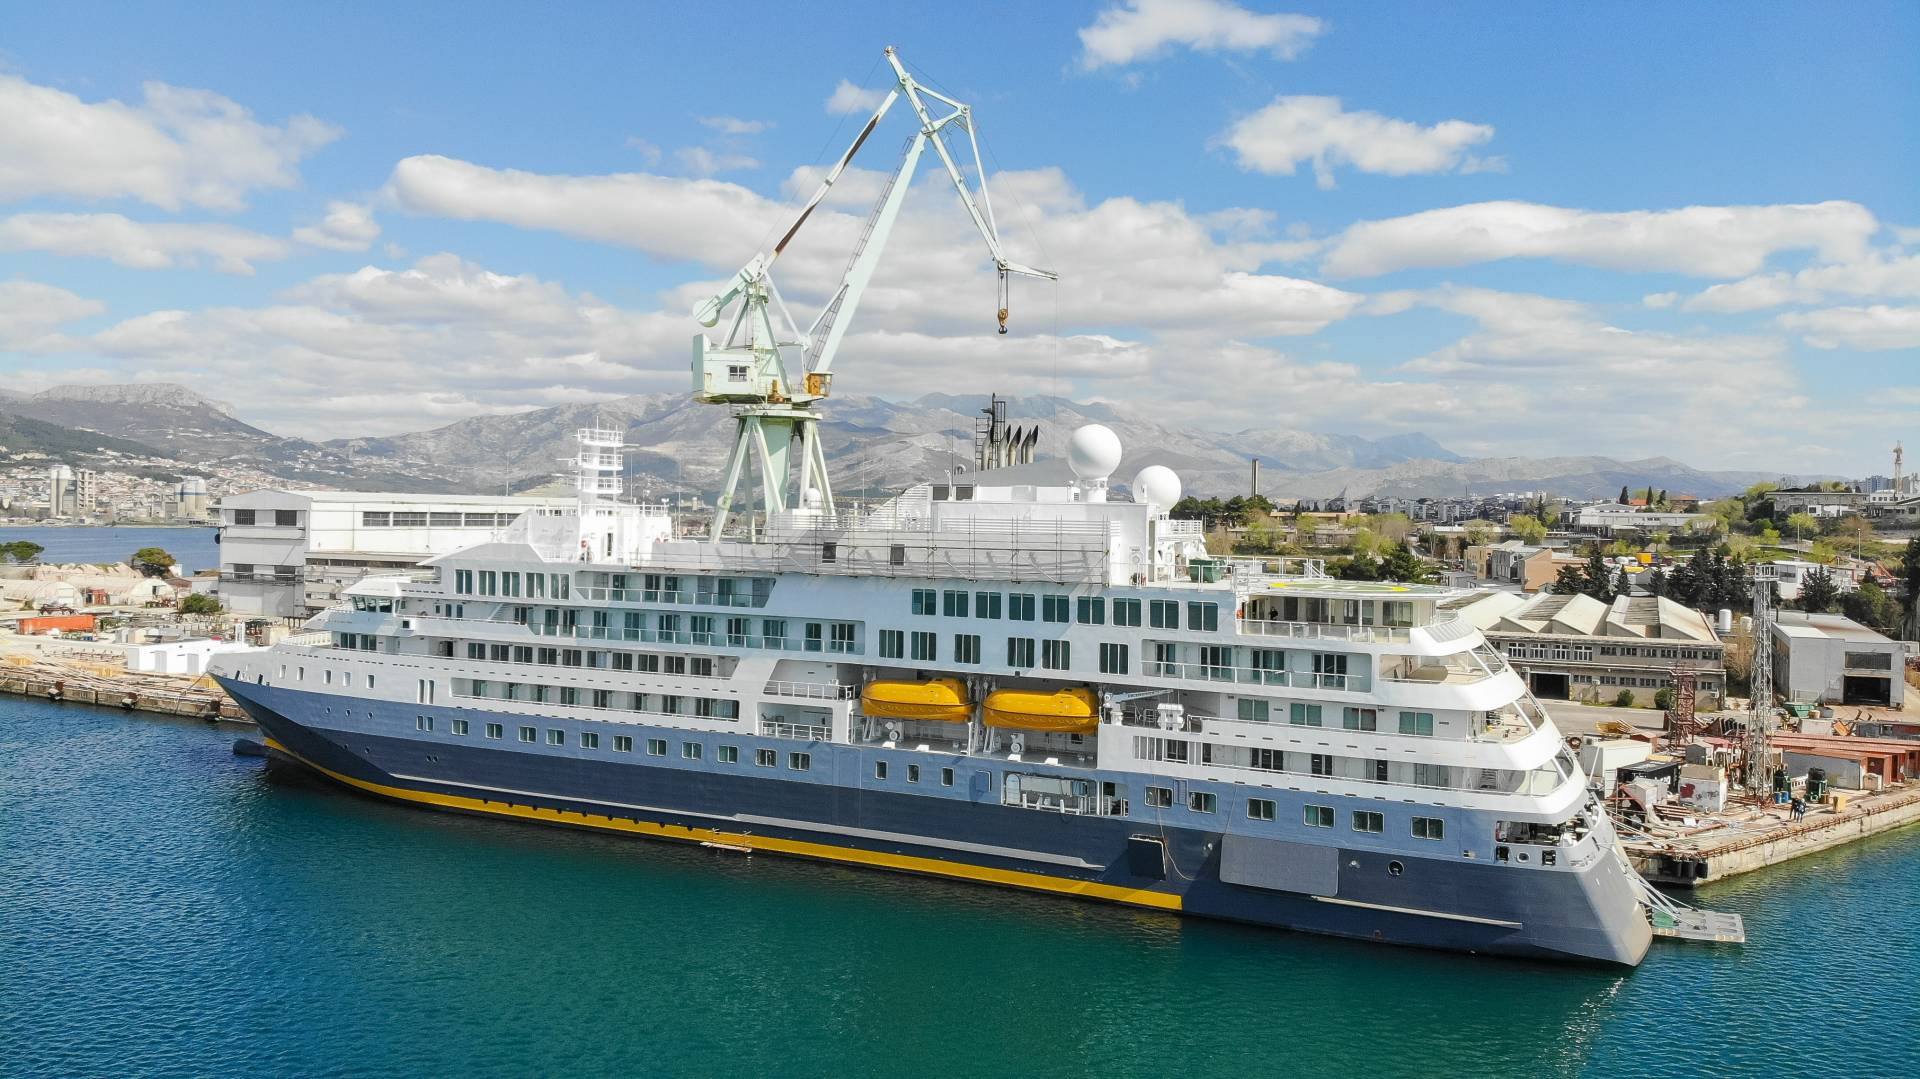 Croatian shipyard Brodosplit hands over €100 million polar cruiser